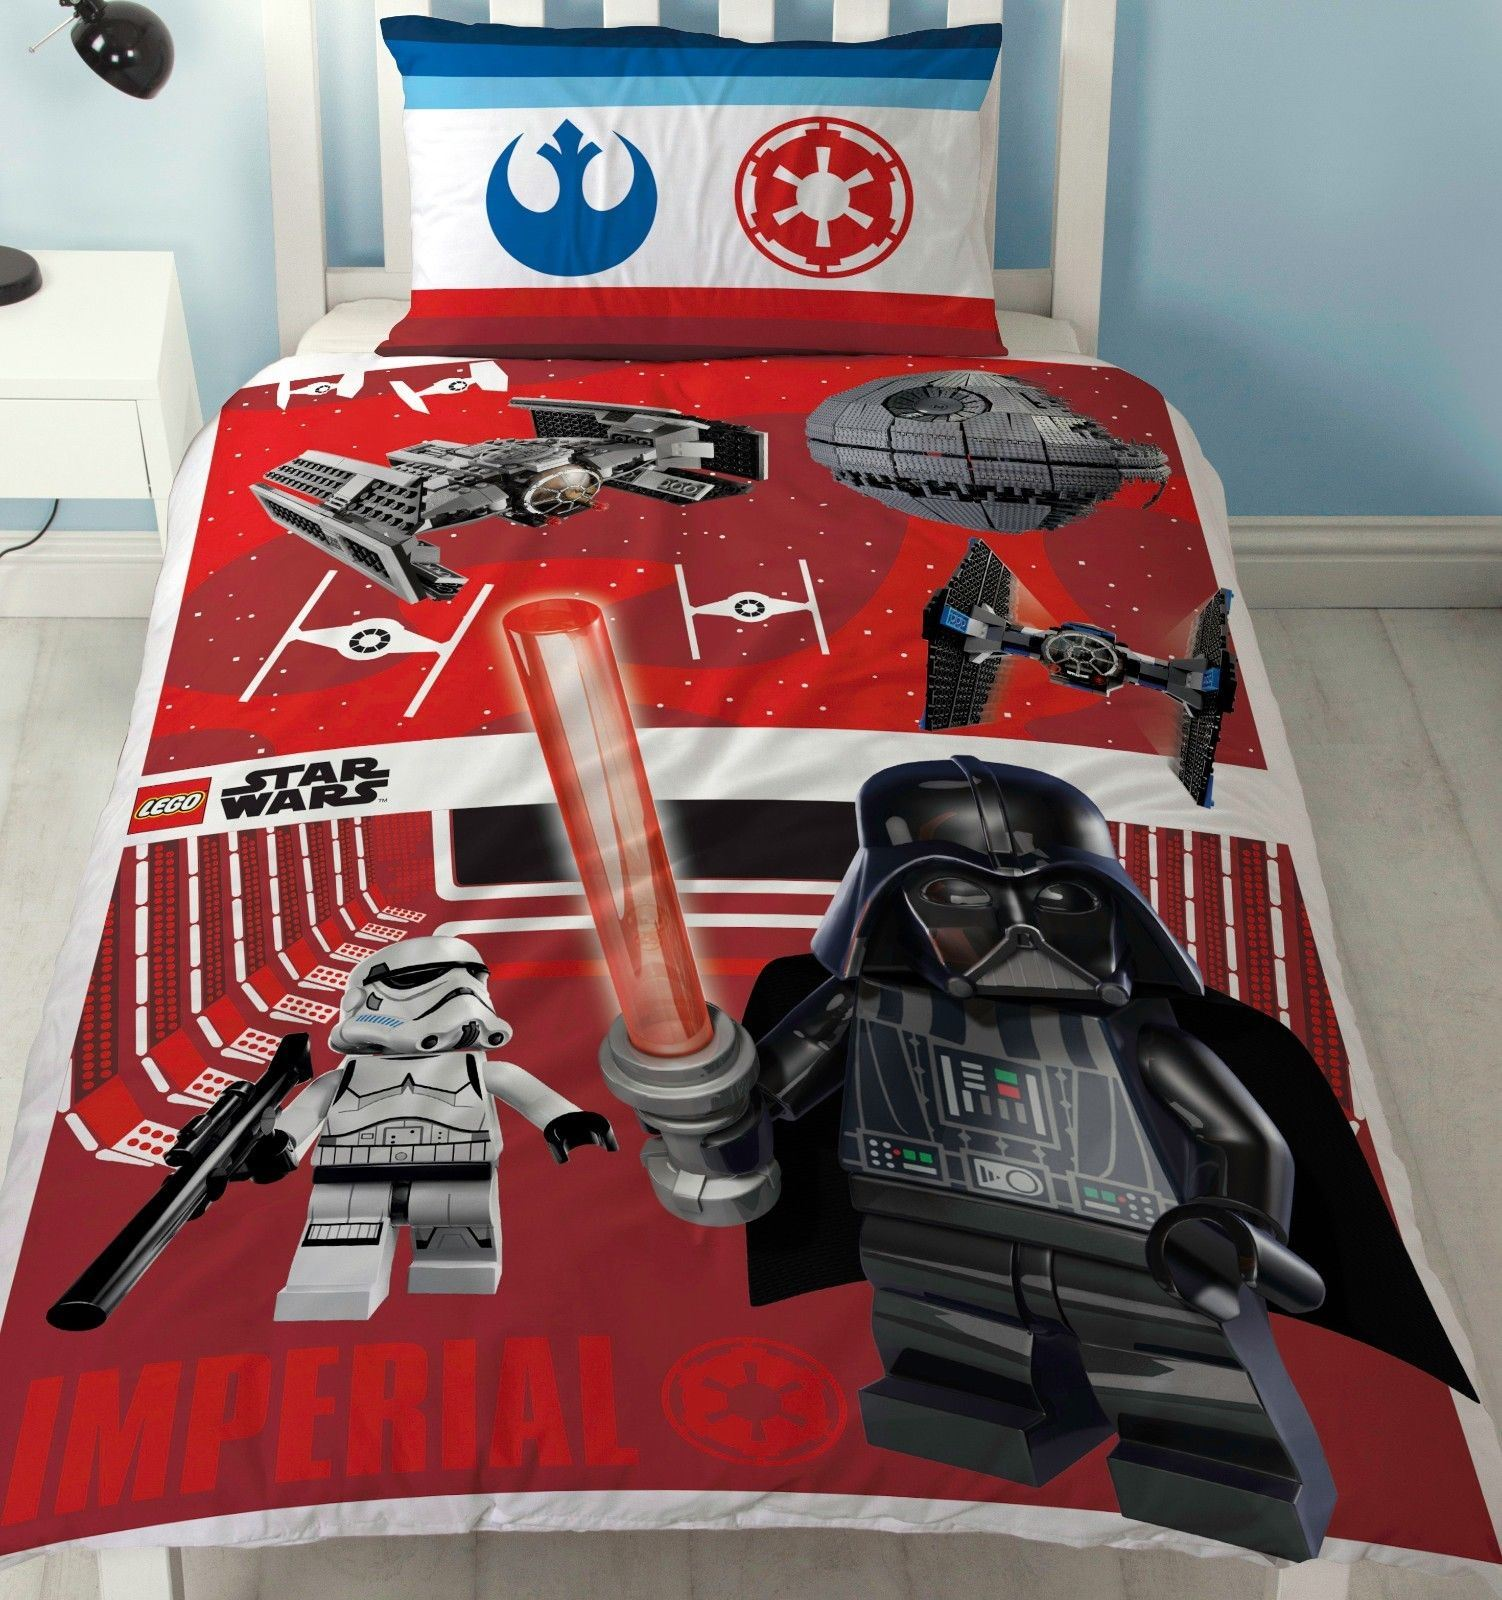 Official-Star-Wars-Licensed-Duvet-Covers-Single-Double-Jedi-Darth-Vader-Lego thumbnail 4